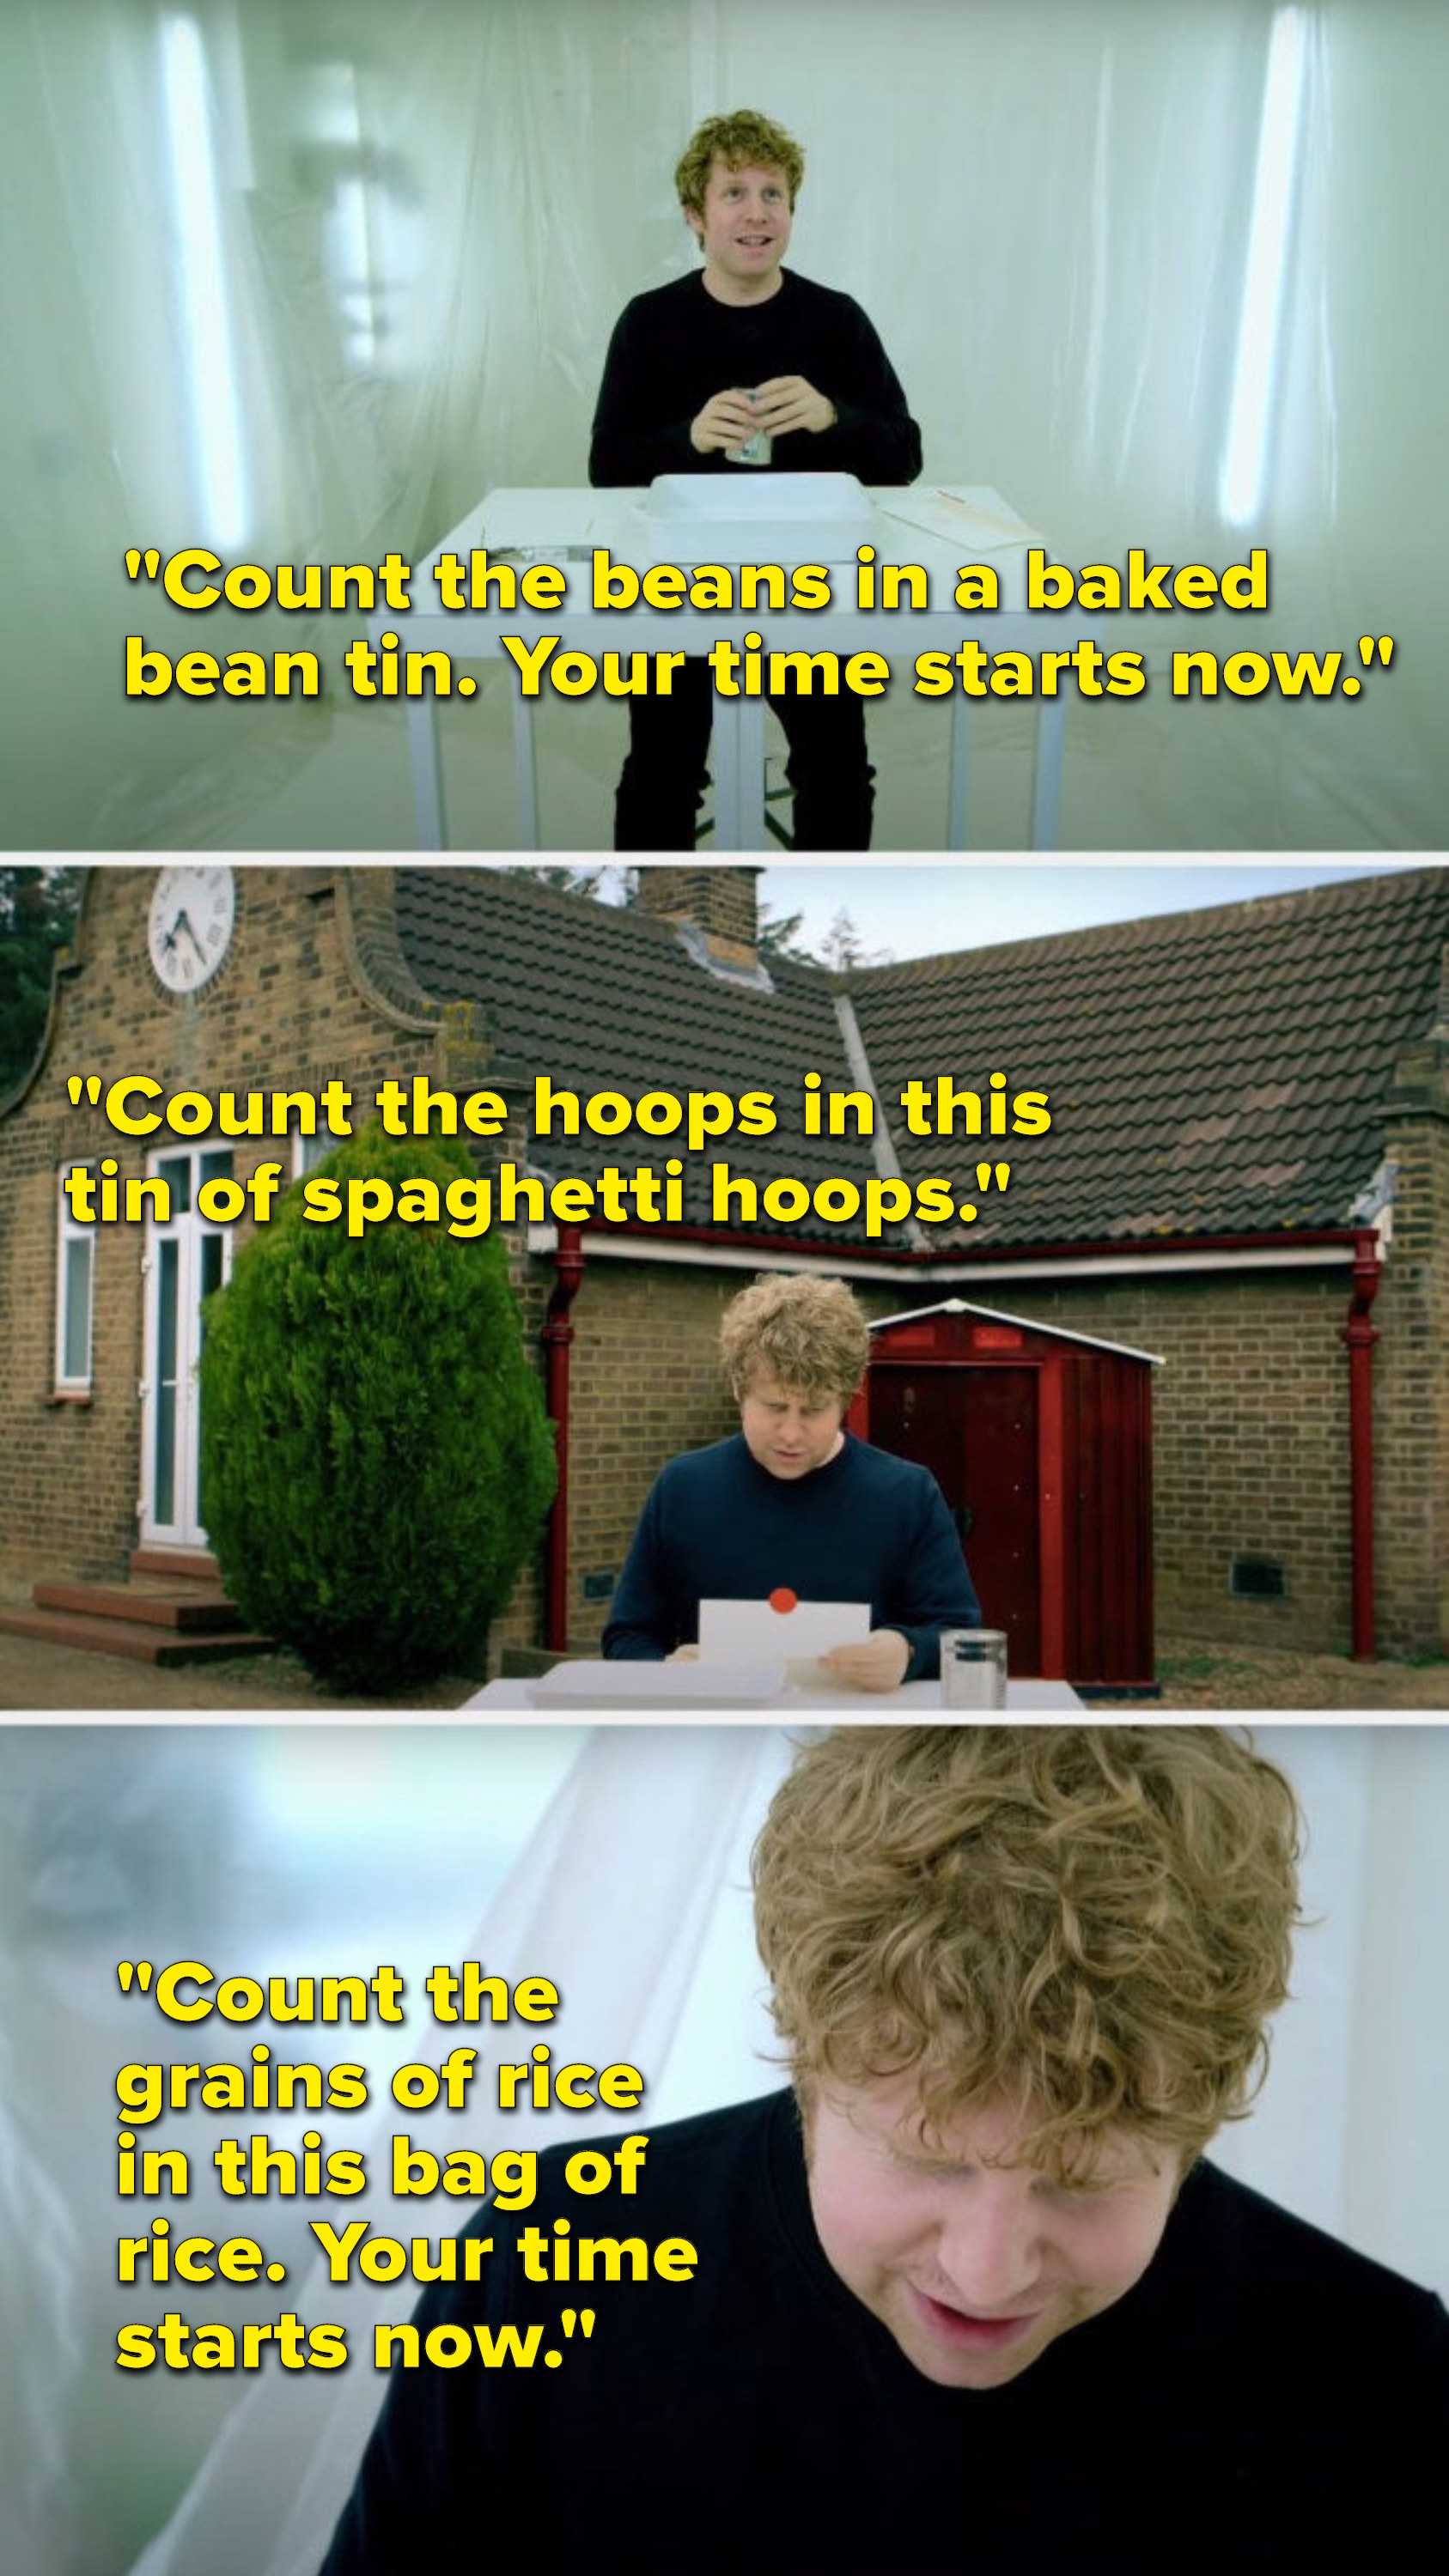 """Josh Widdicombe gets the tasks, """"Count the beans in a baked bean tin, your time starts now,"""" """"Count the hoops in this tin of spaghetti hoops,"""" and, """"Count the grains of rice in this bag of rice, your time starts now"""""""